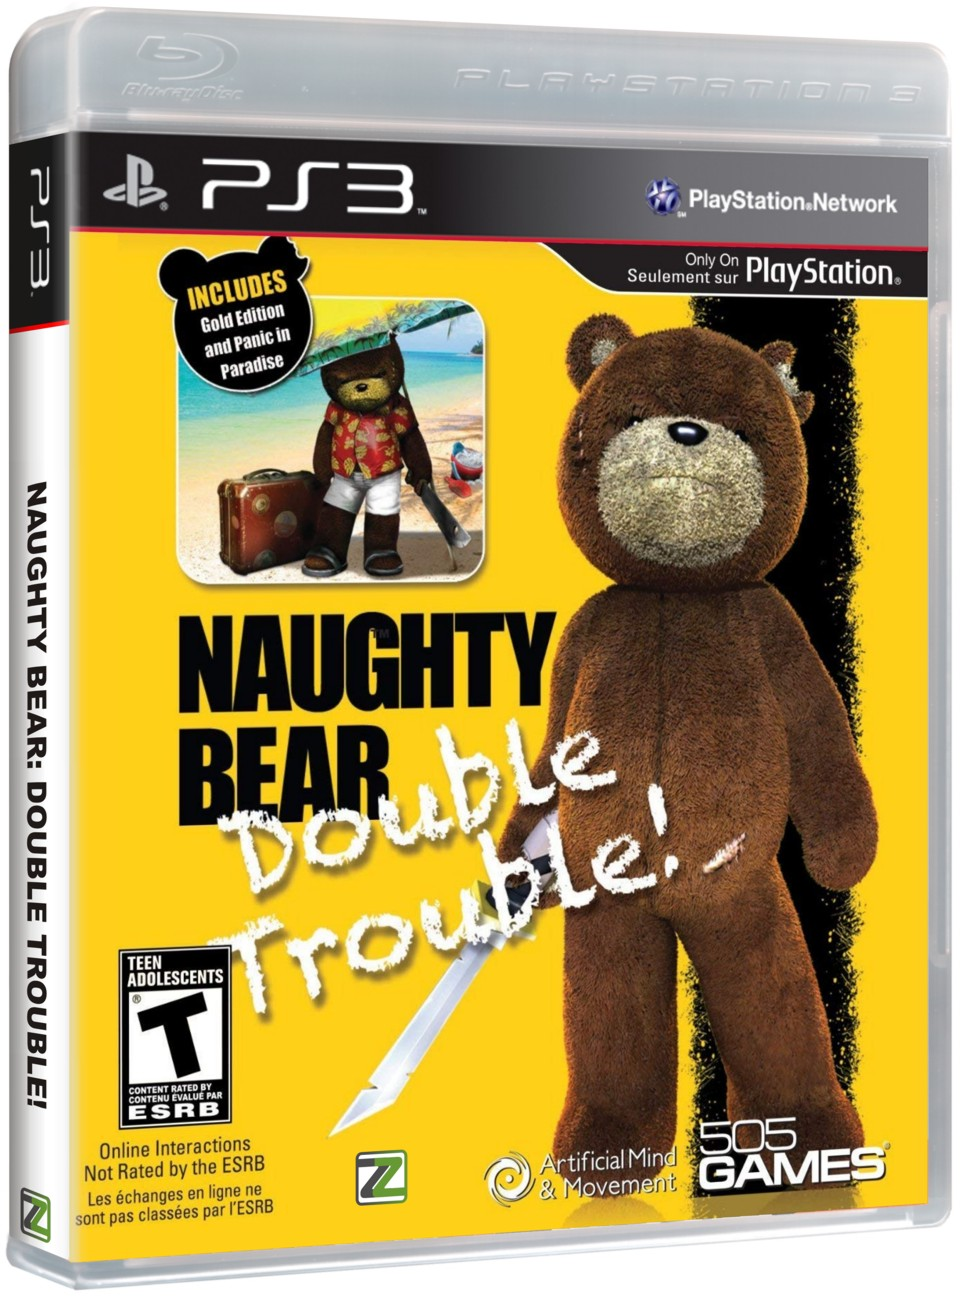 NAUGHTY BEAR - Double Trouble - PS3